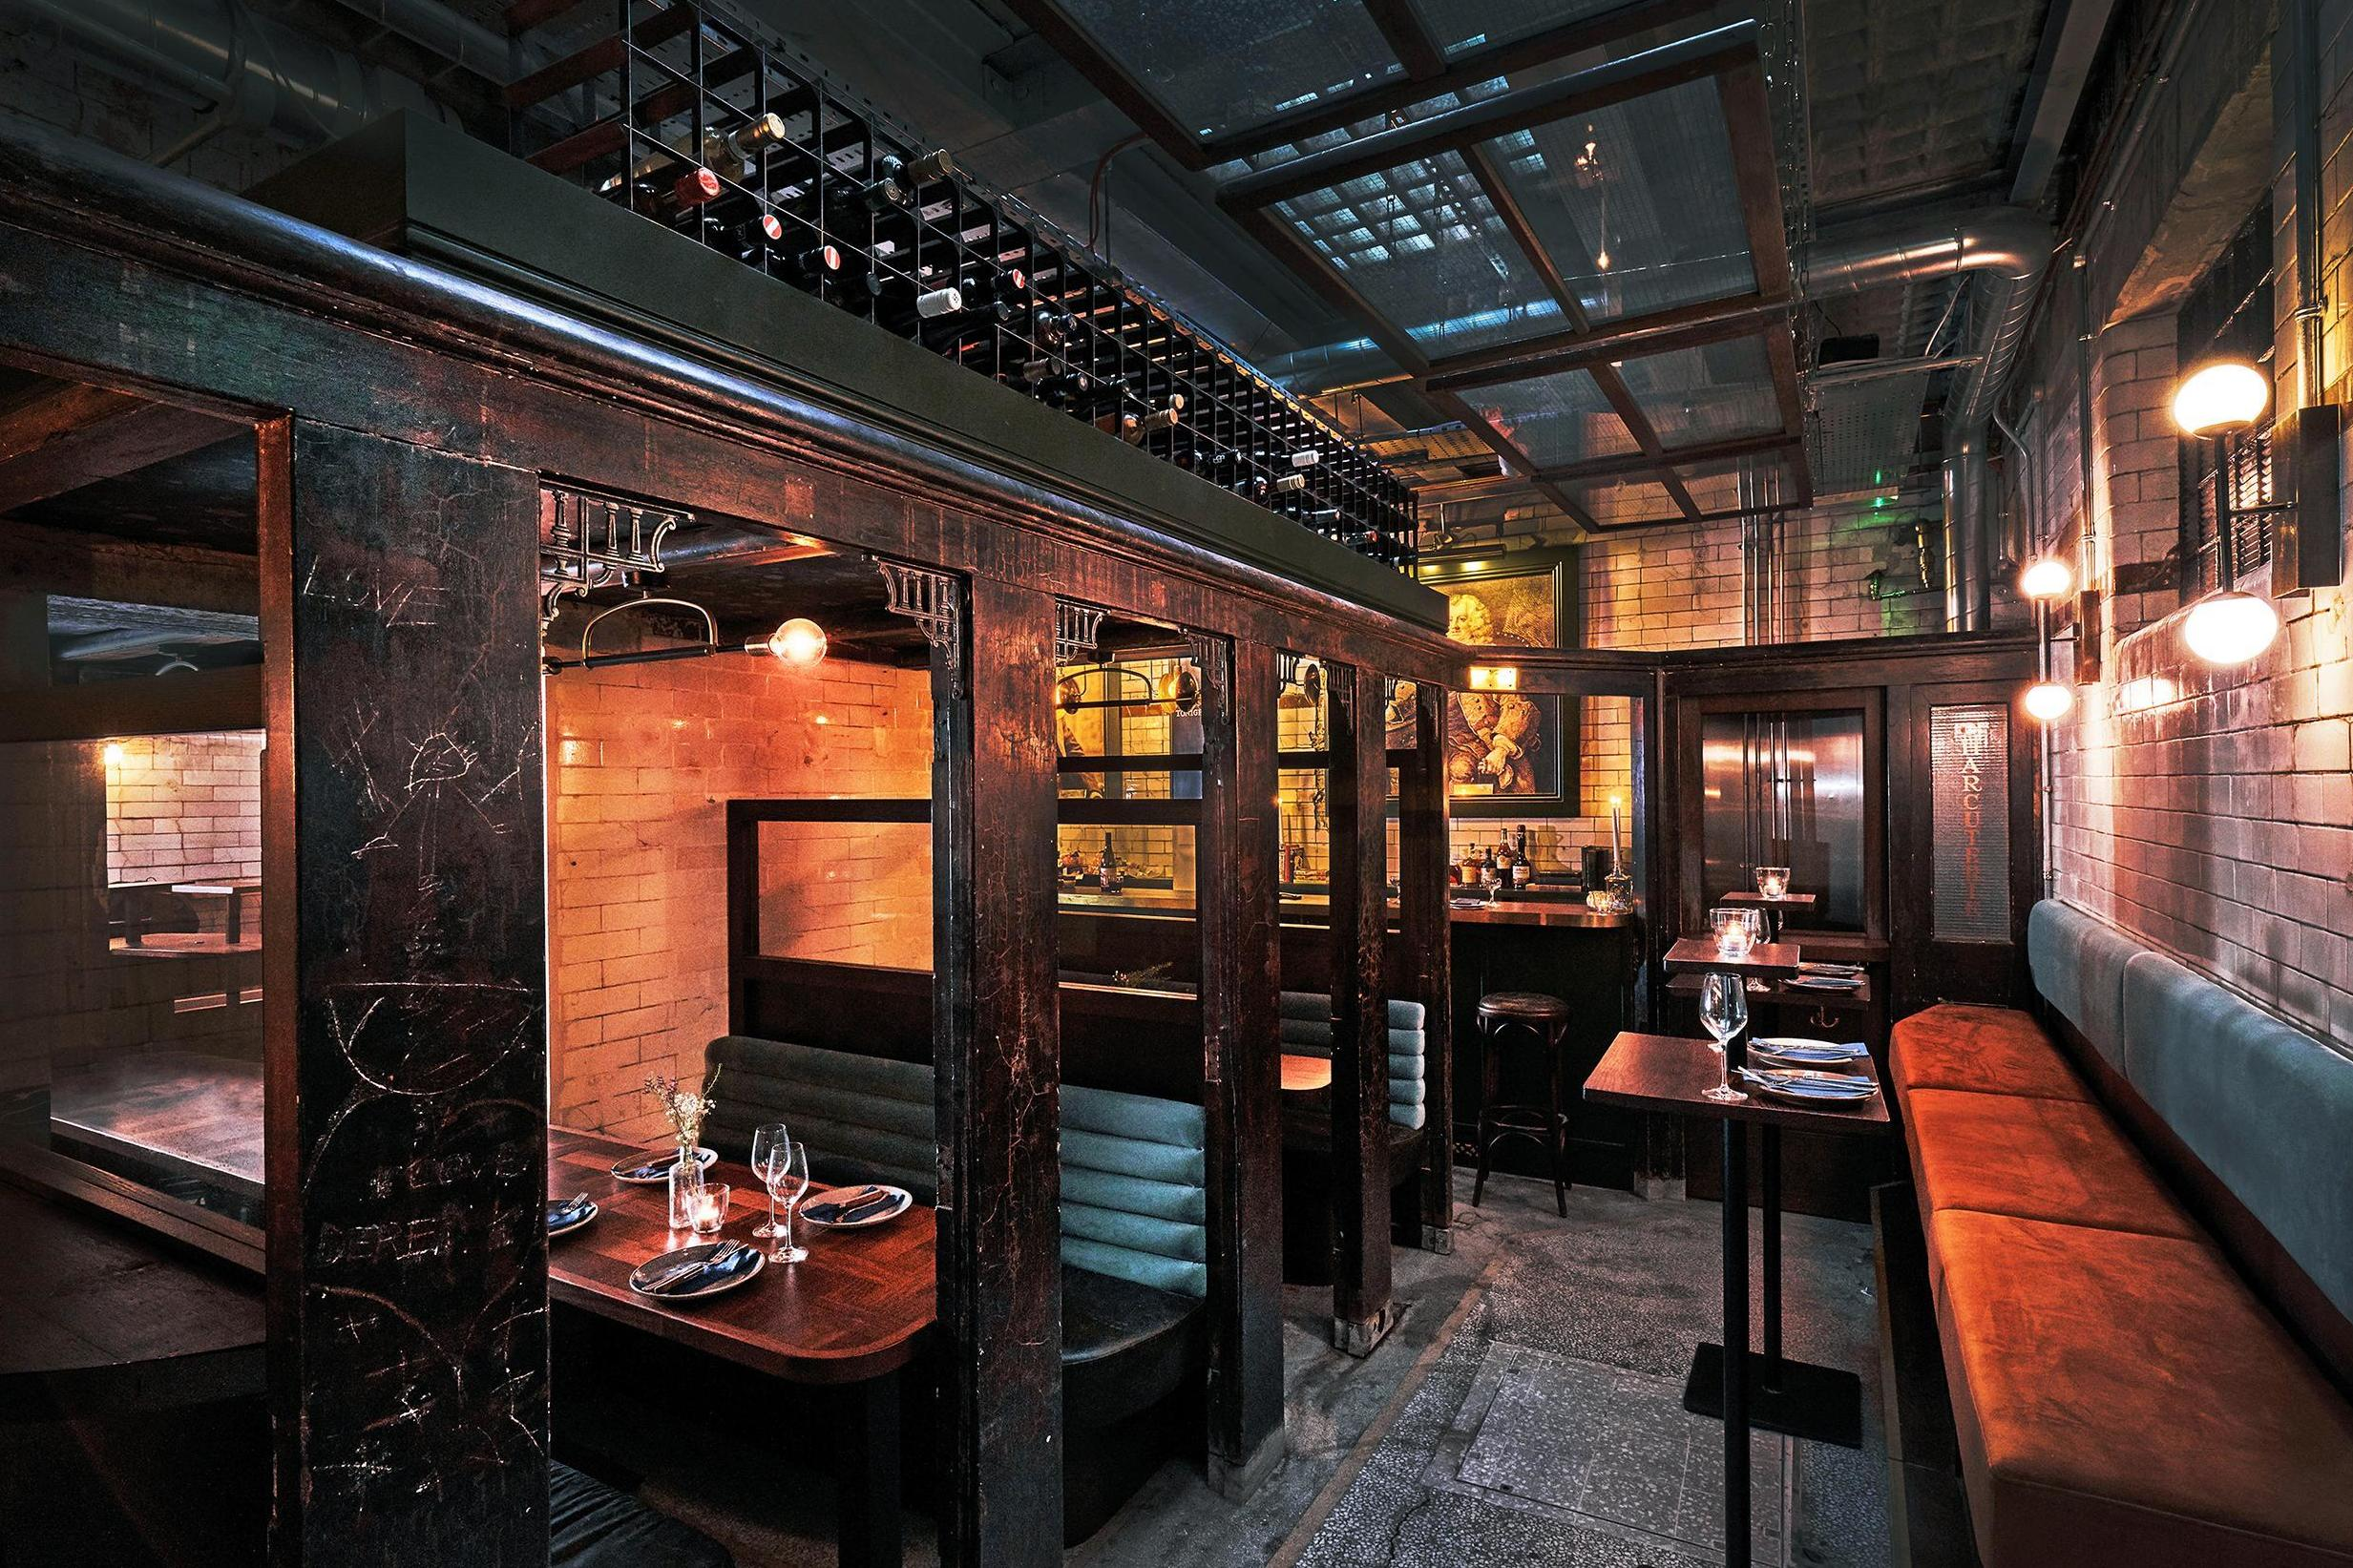 wc-team-head-to-bloomsbury-to-open-second-wine-bar-in-a-former-loo